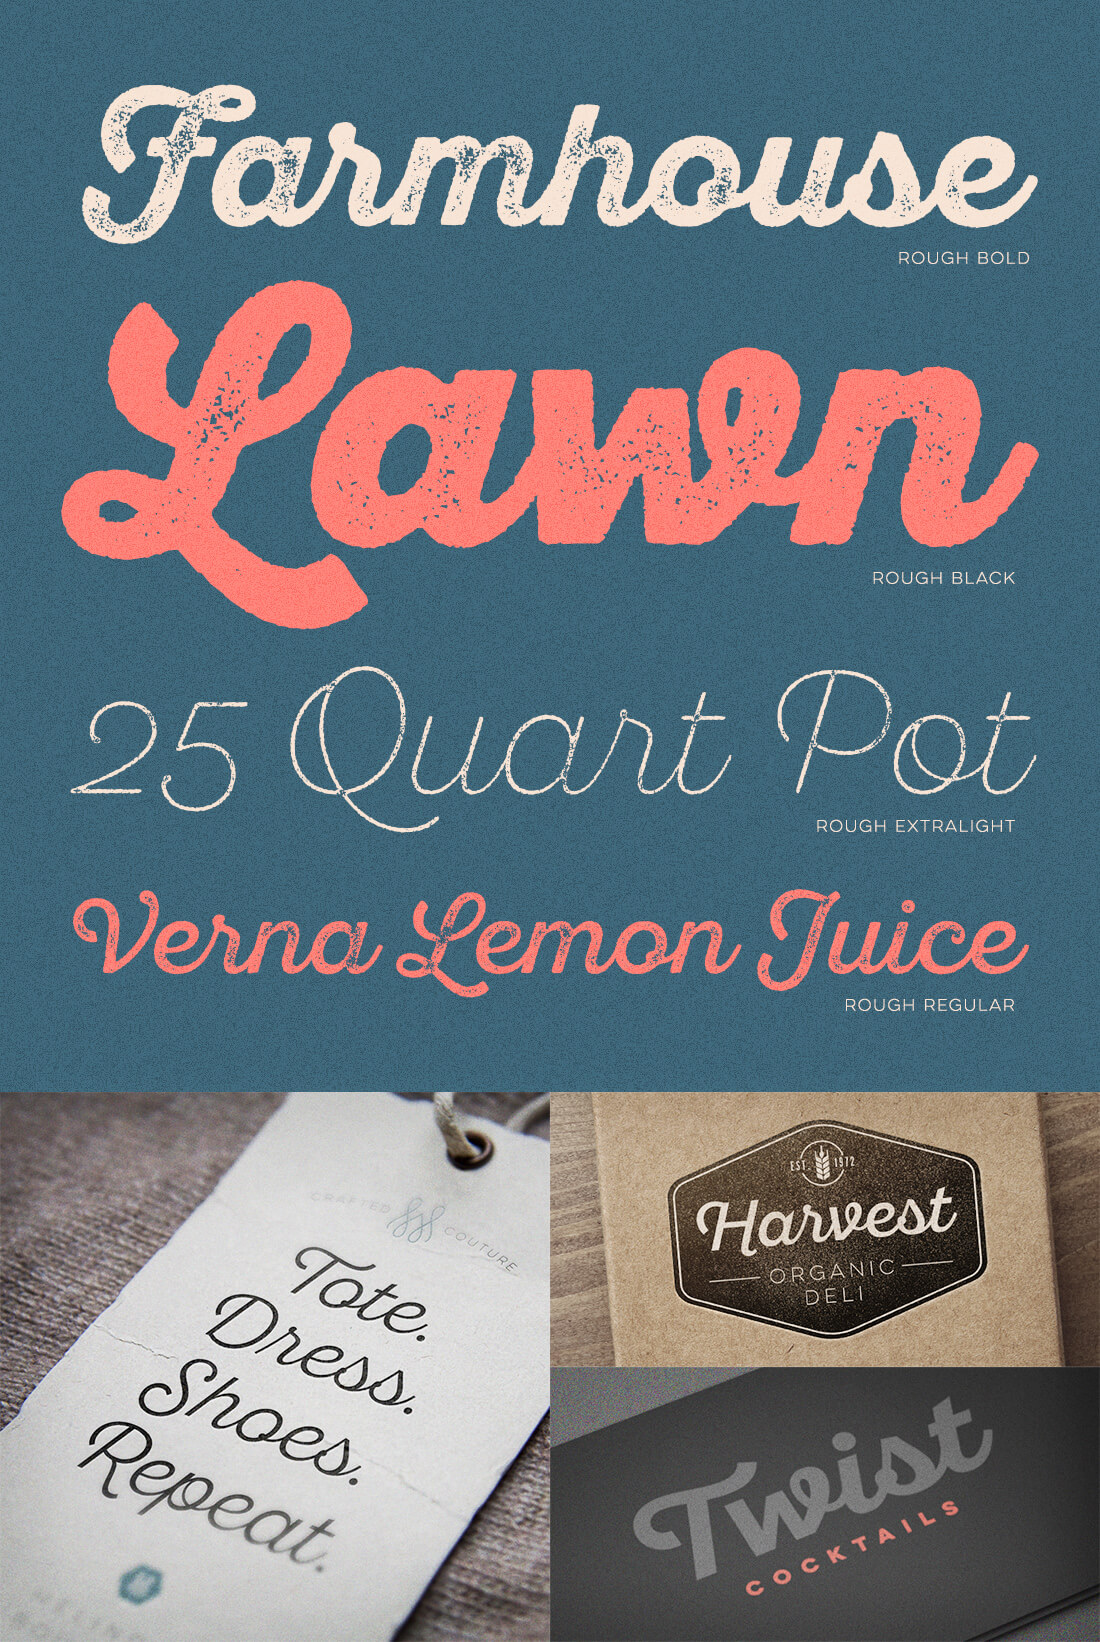 Get creative with Sant'Elia Script (includes 44 fonts) - only $19